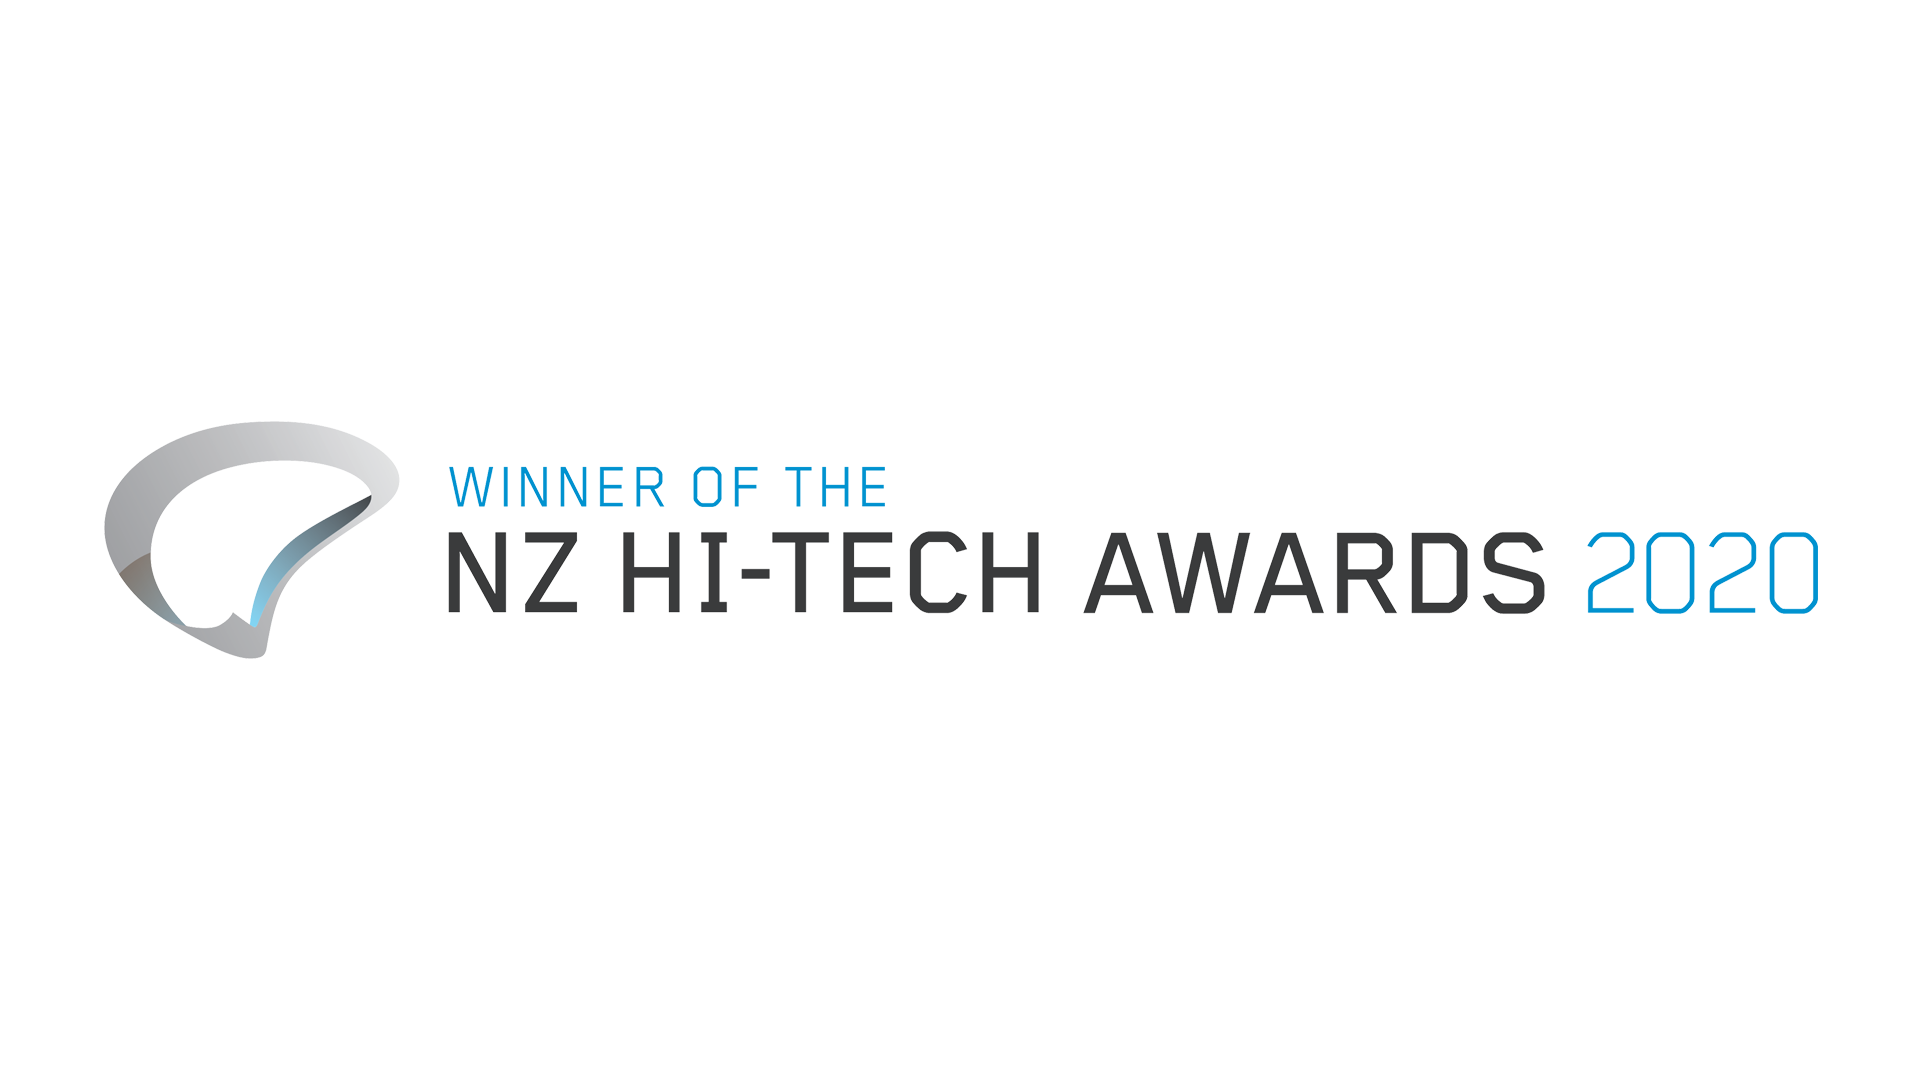 Hi tech awards Feature Image-1